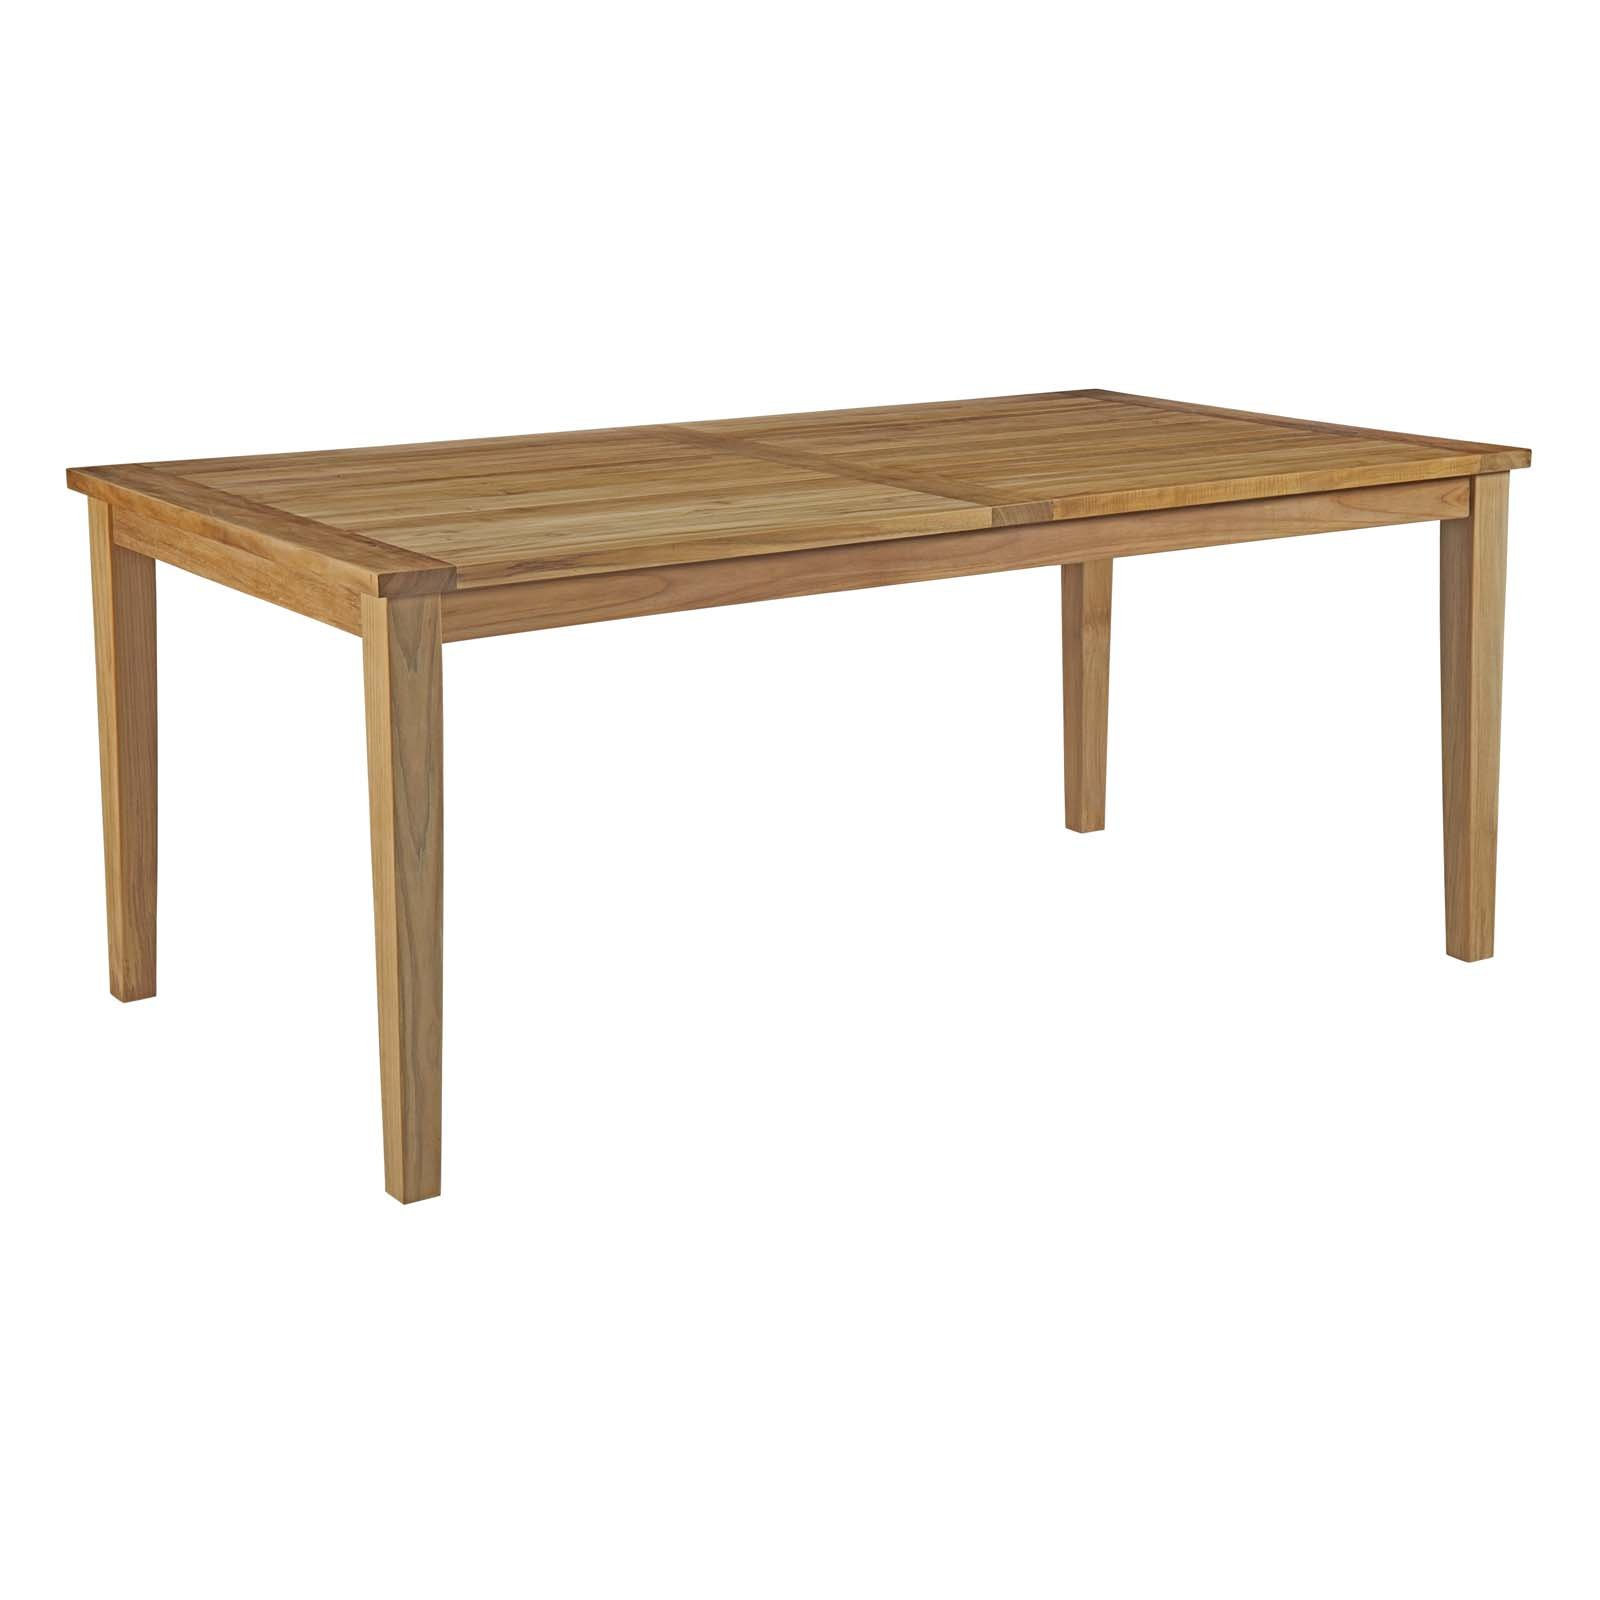 Modway Marina 72'' Teak Wood Outdoor Patio Dining Table in Natural